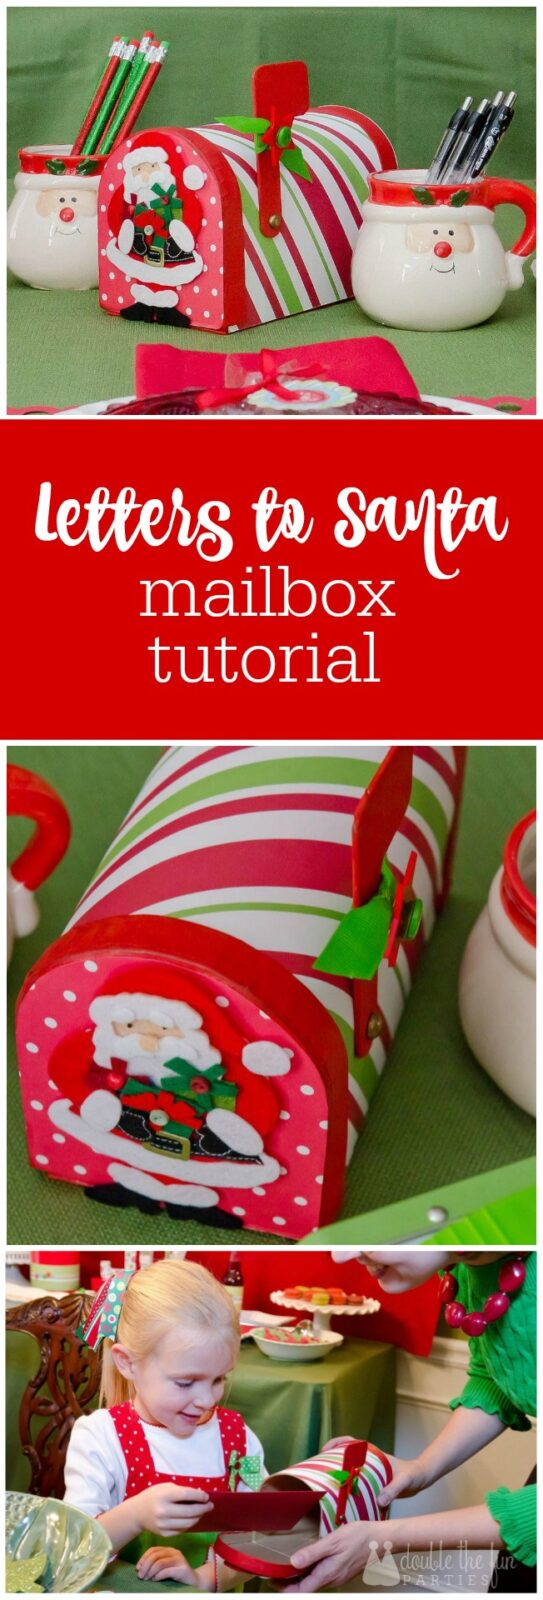 Letters to Santa DIY mailbox tutorial by The Party Teacher